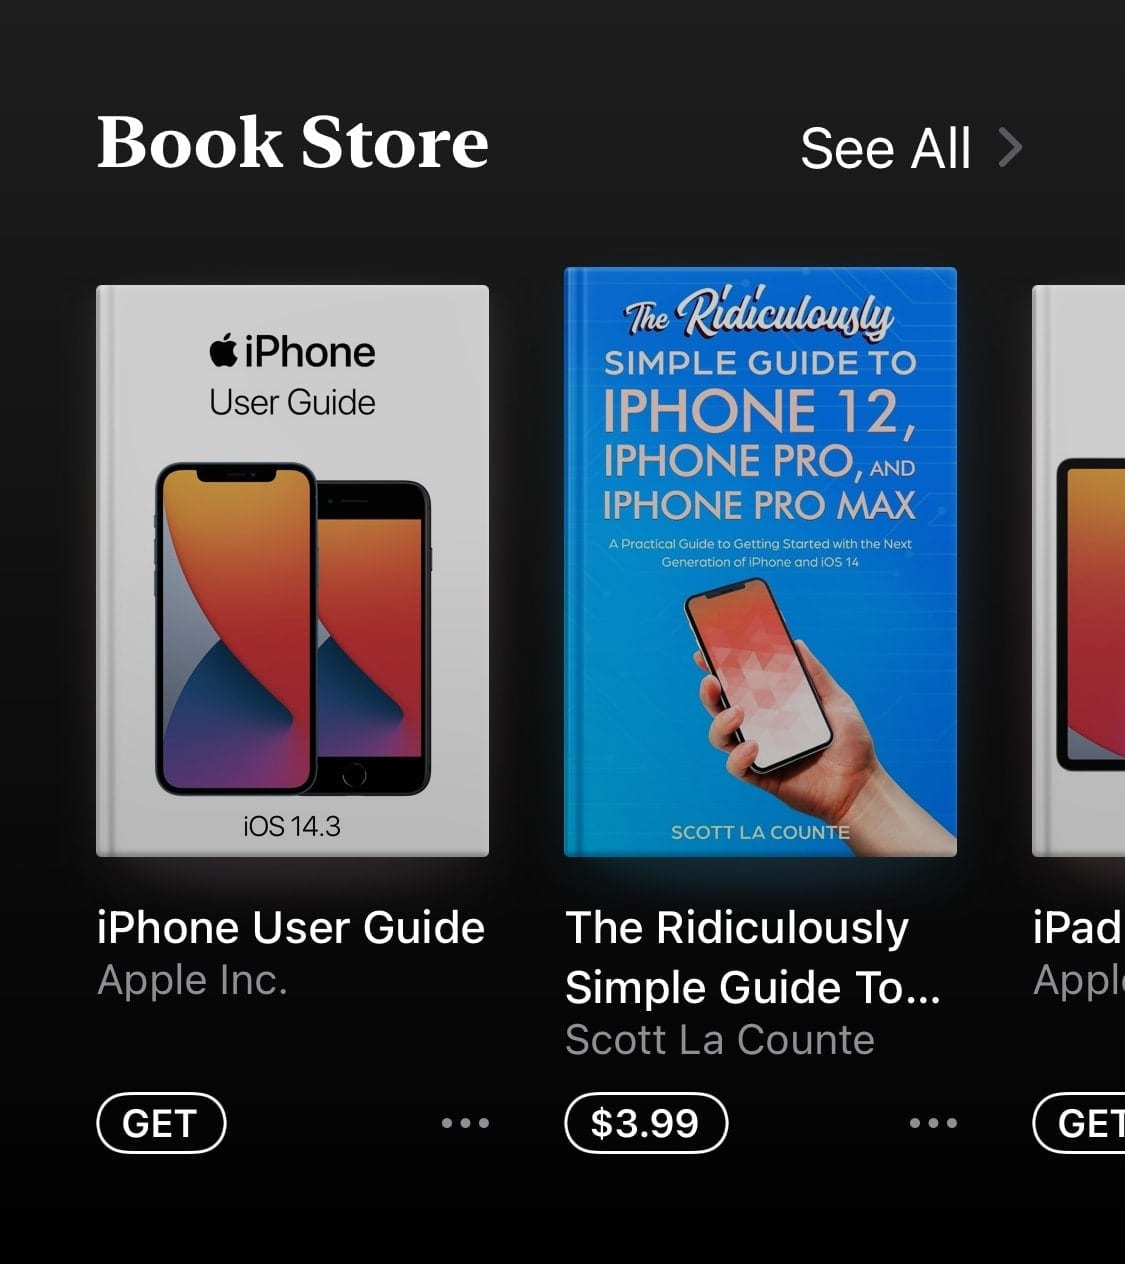 iBooks search results on iPhone